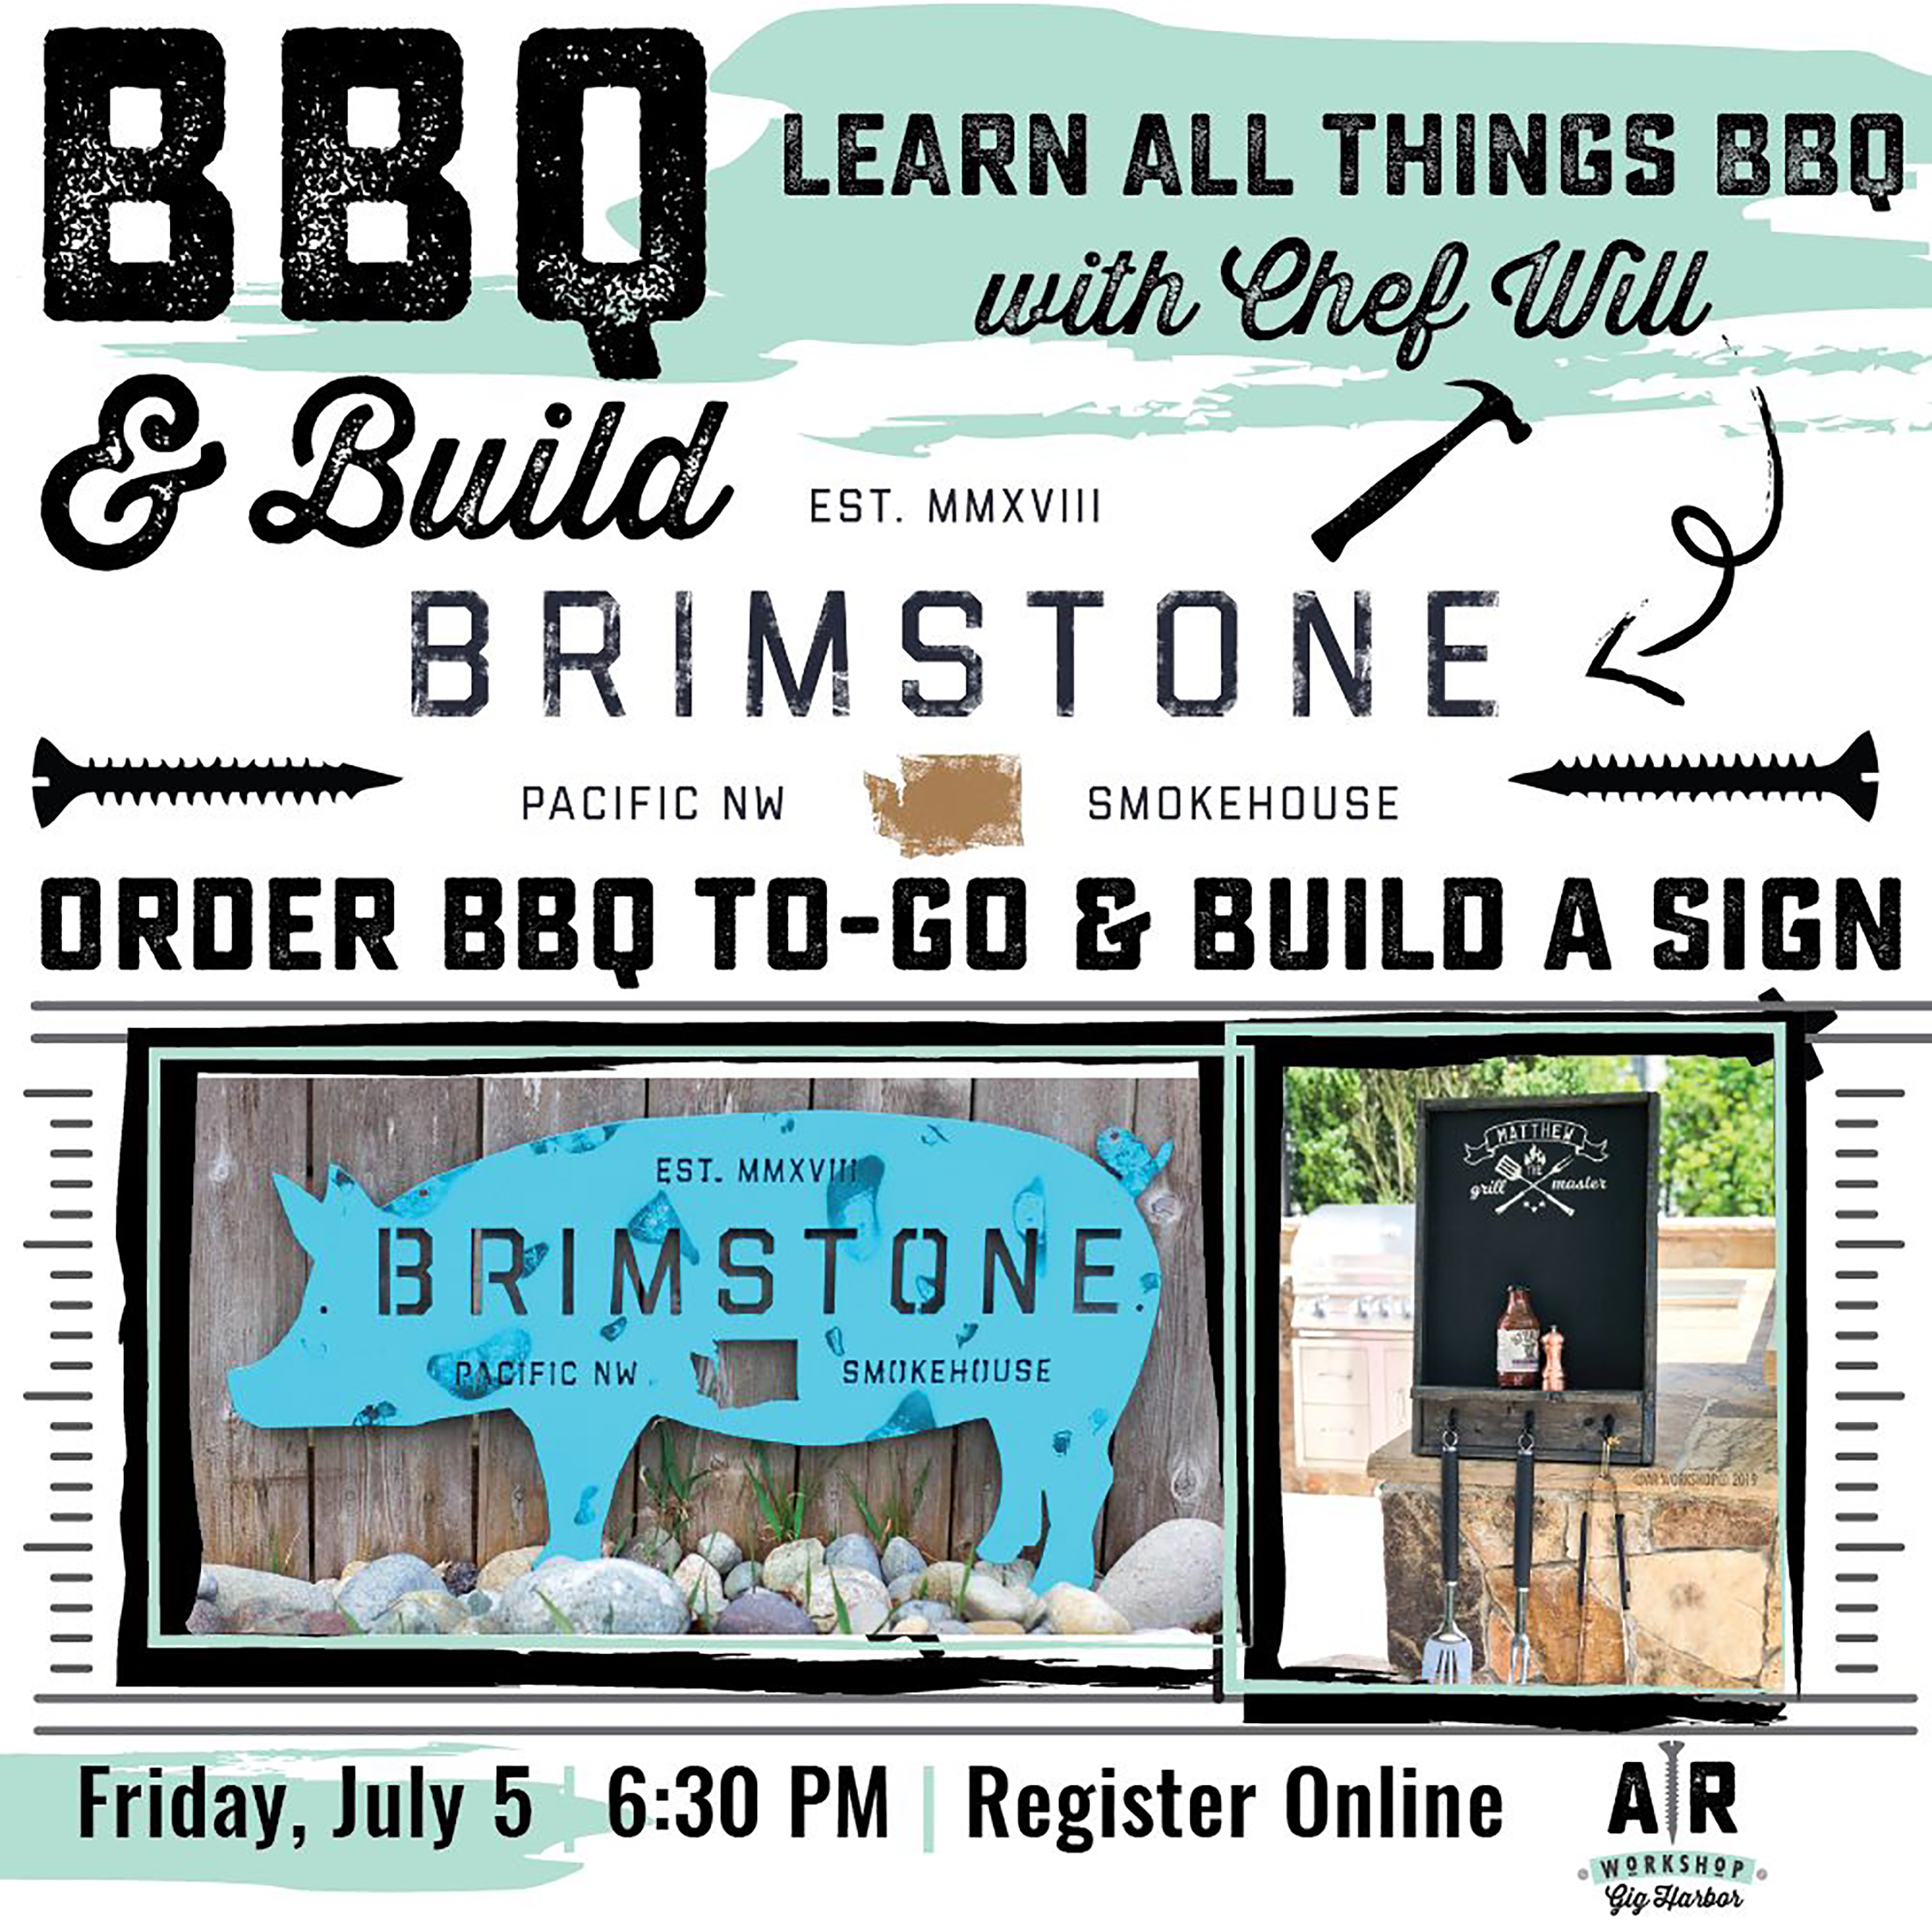 SPECIALTY WORKSHOP - BRIMSTONE BBQ & BUILD - This workshop will get you ready for your holiday weekend celebrations! Chef Will from Brimstone PNW Smokehouse, will guide you through ALL THINGS BBQ- from meat selection and preparations to serving styles, as well as offering mouth-watering samples from his smokehouse menu.Pre-order a